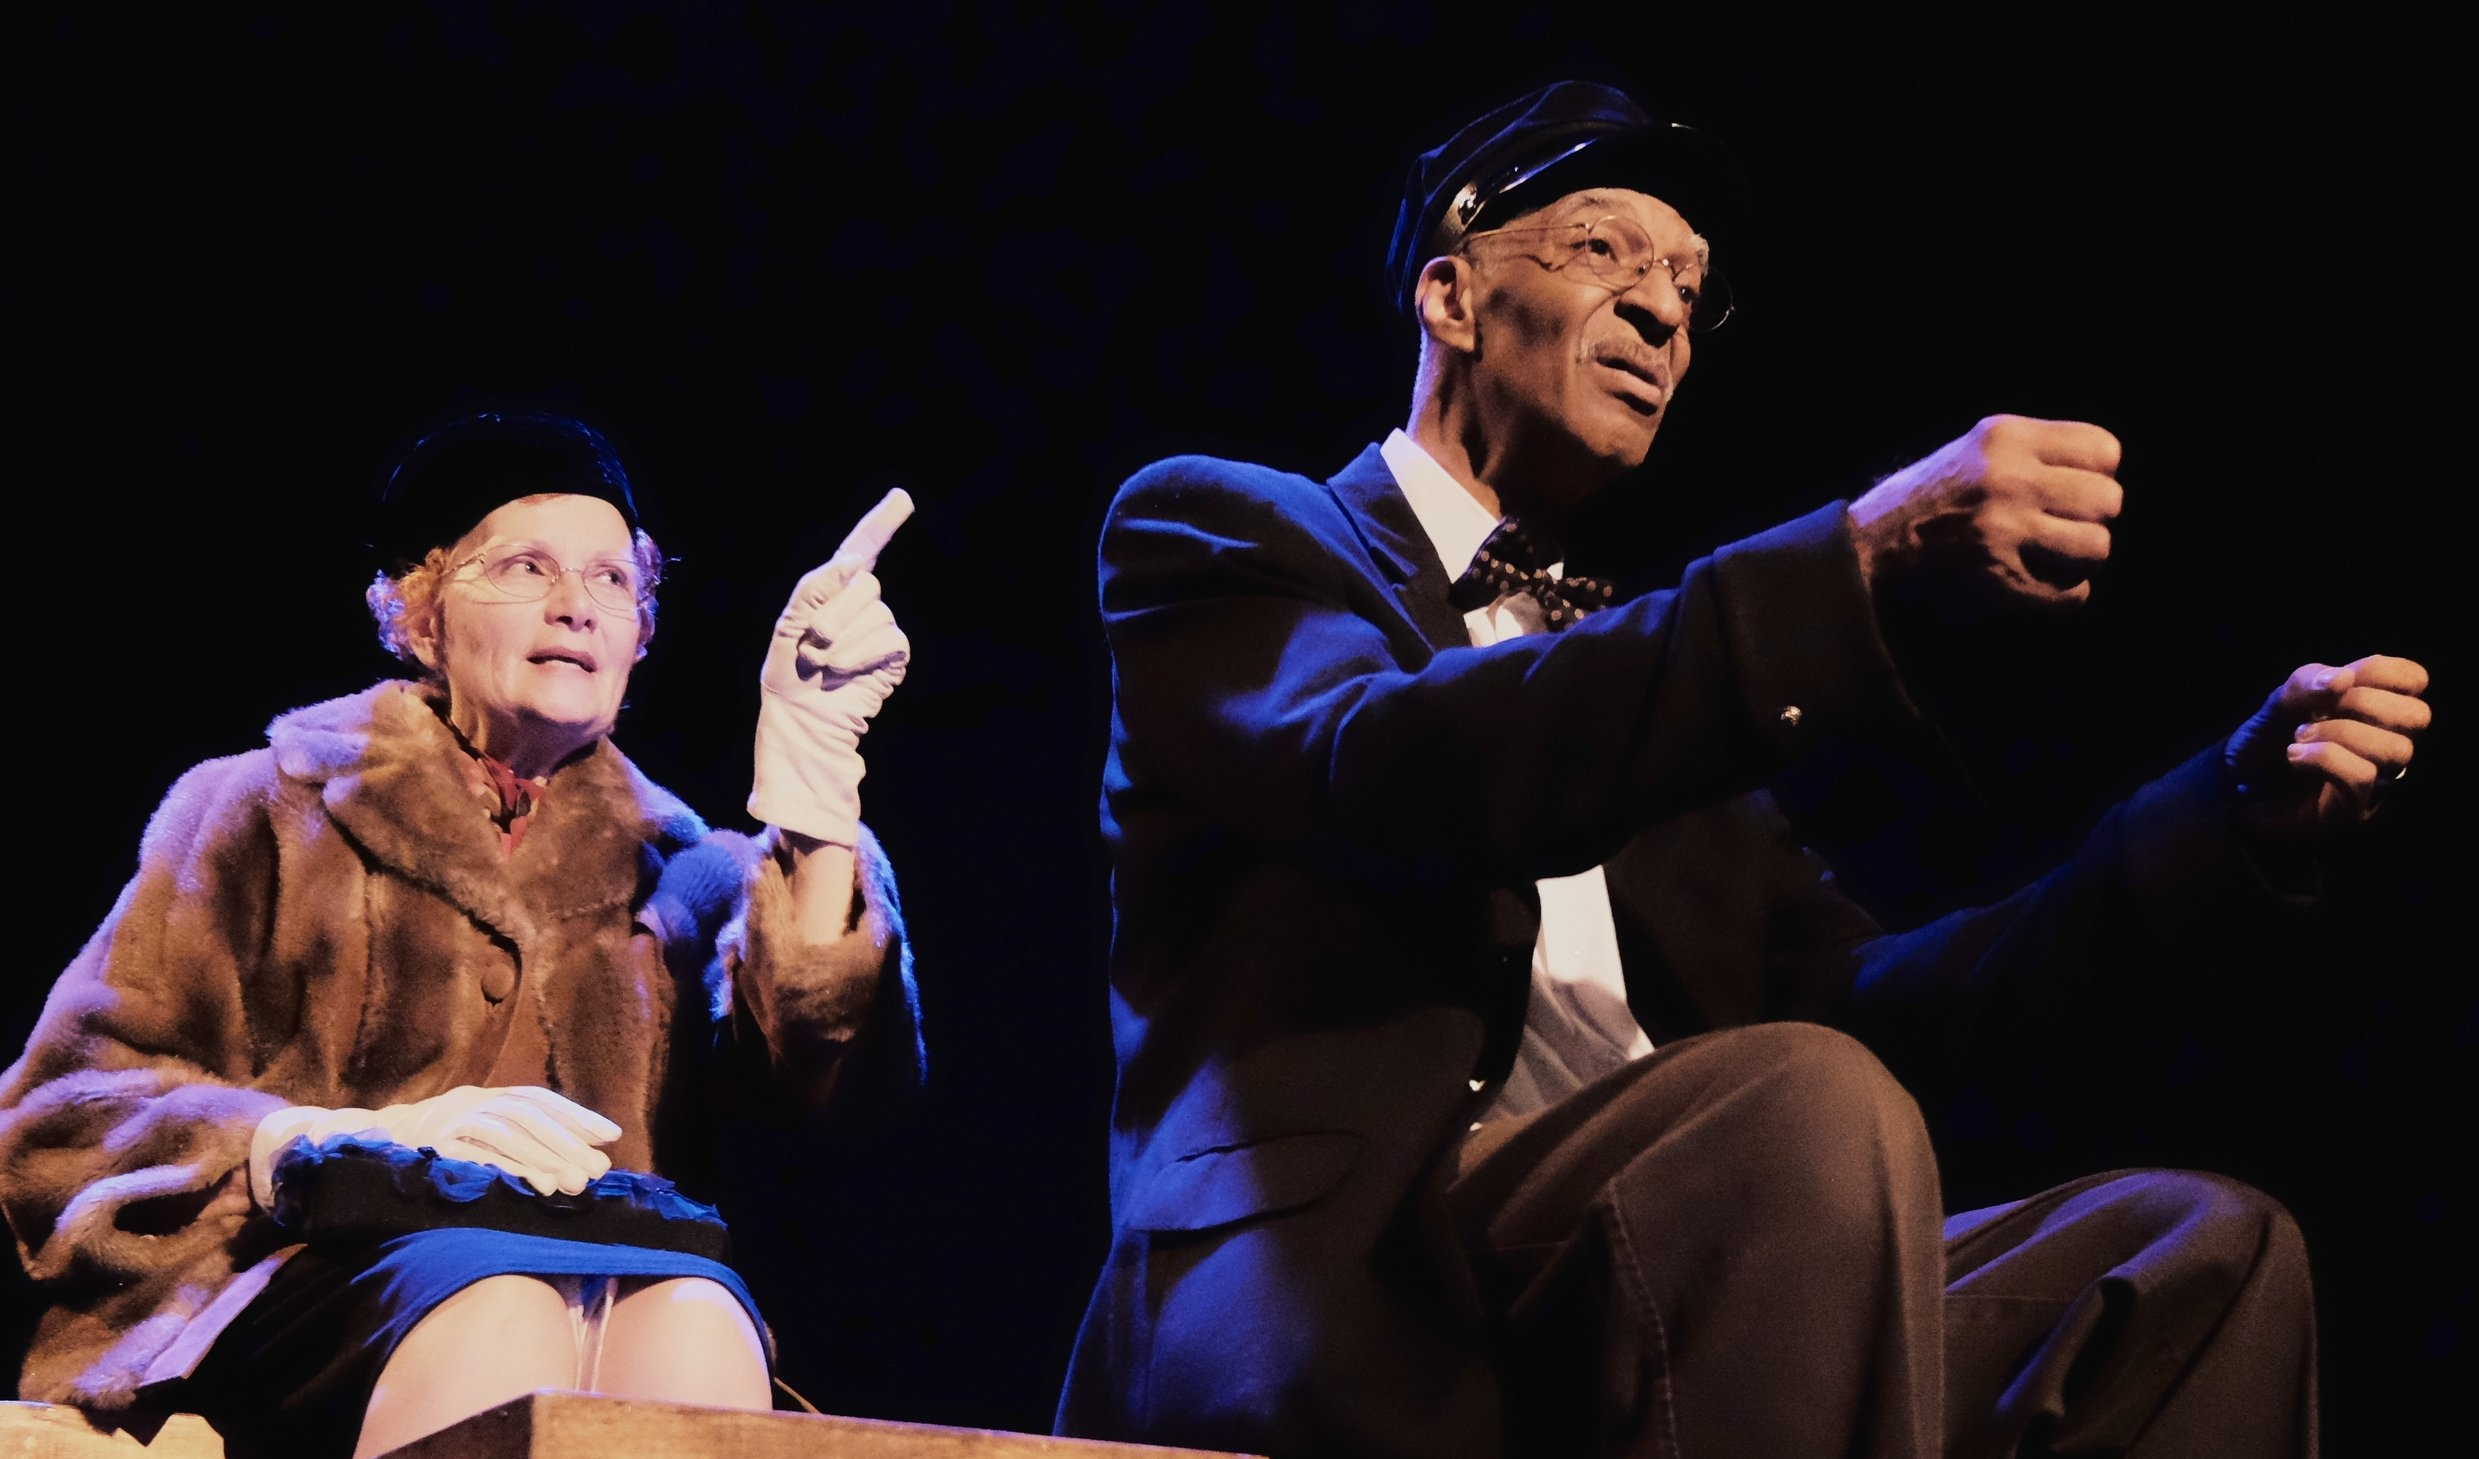 DRIVING MISS DAISY by Alfred Uhry, with Suzanne Lederer and Tone Forrest, 2016.